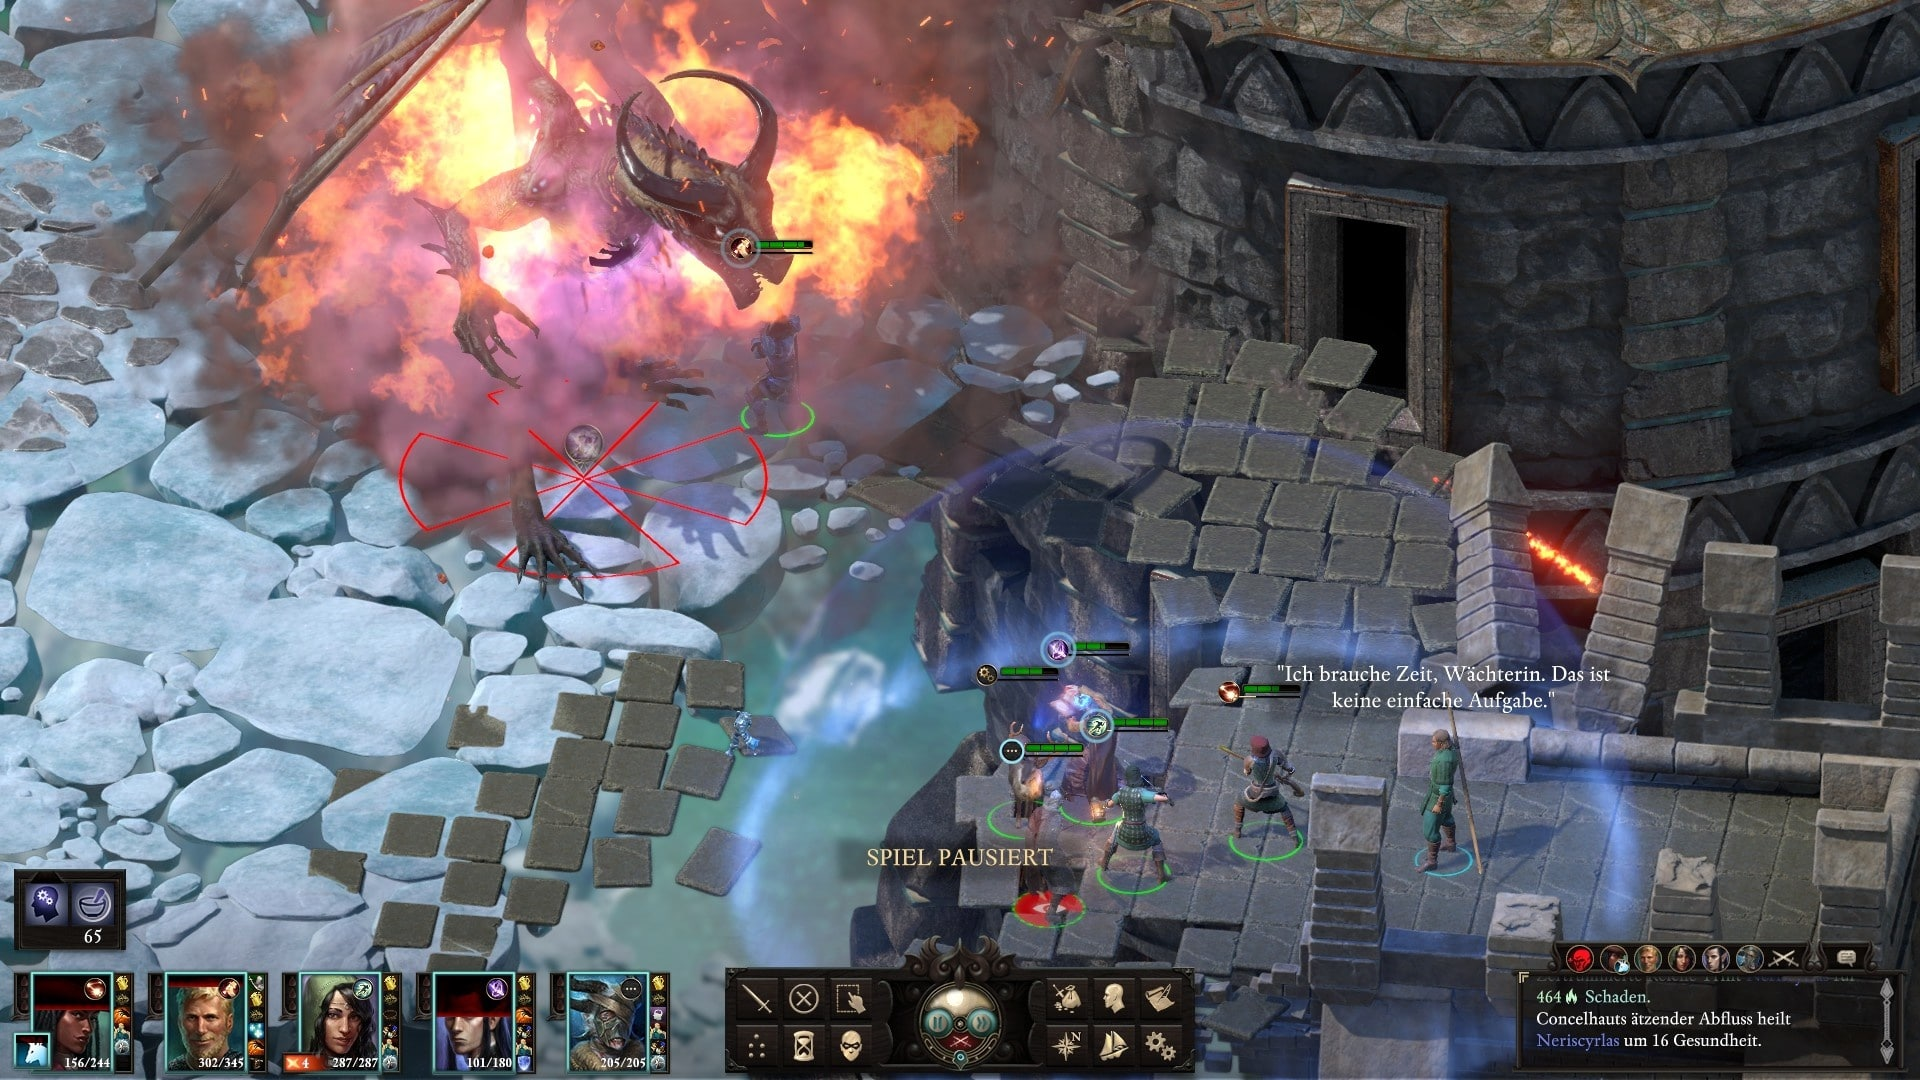 Even in the iso perspective of oldschool role-playing games, the magic effects look impressive.